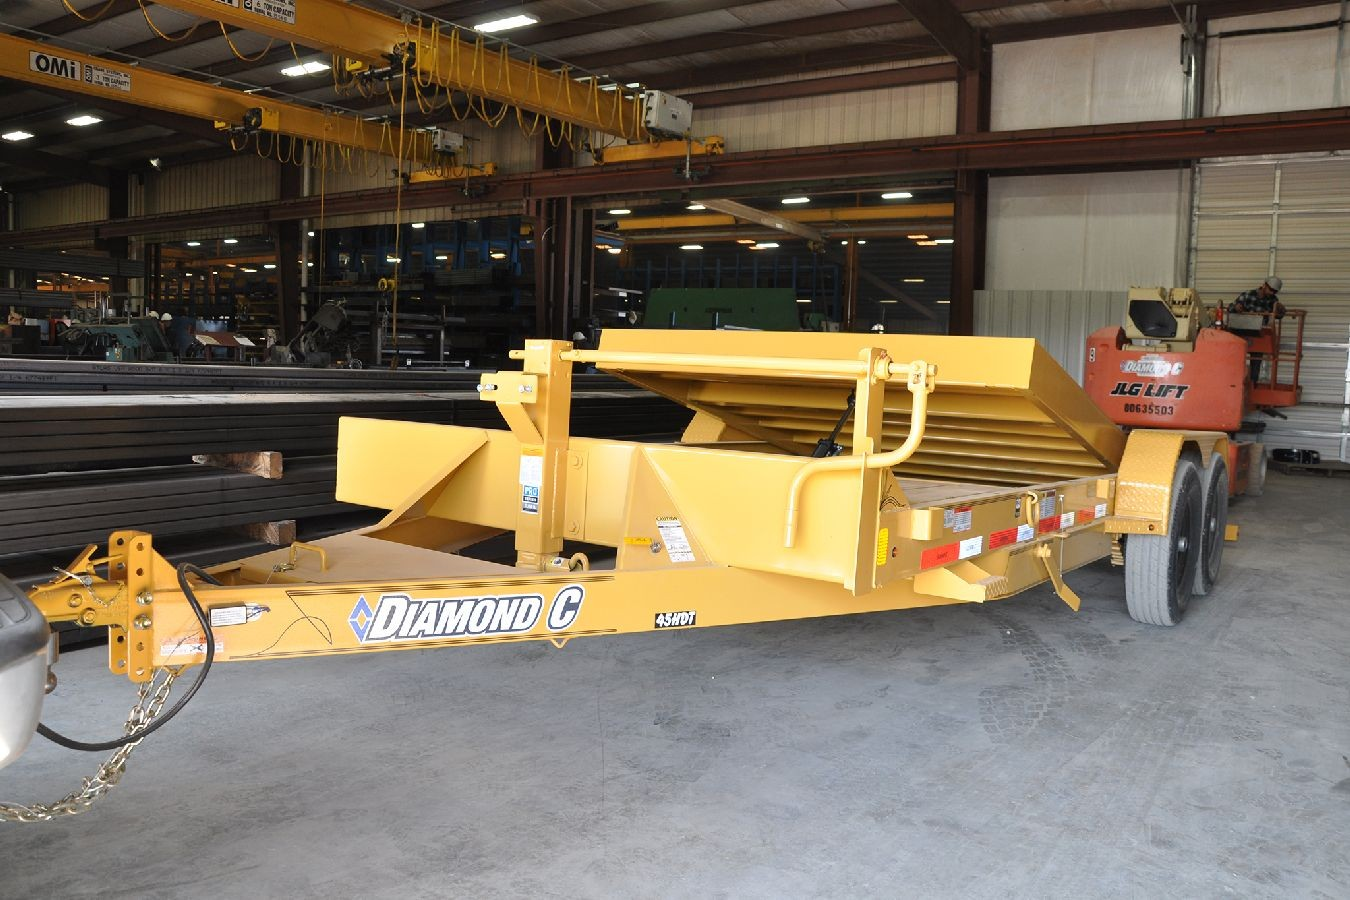 Diamond C 45hdt Low Boy Tilt Trailer